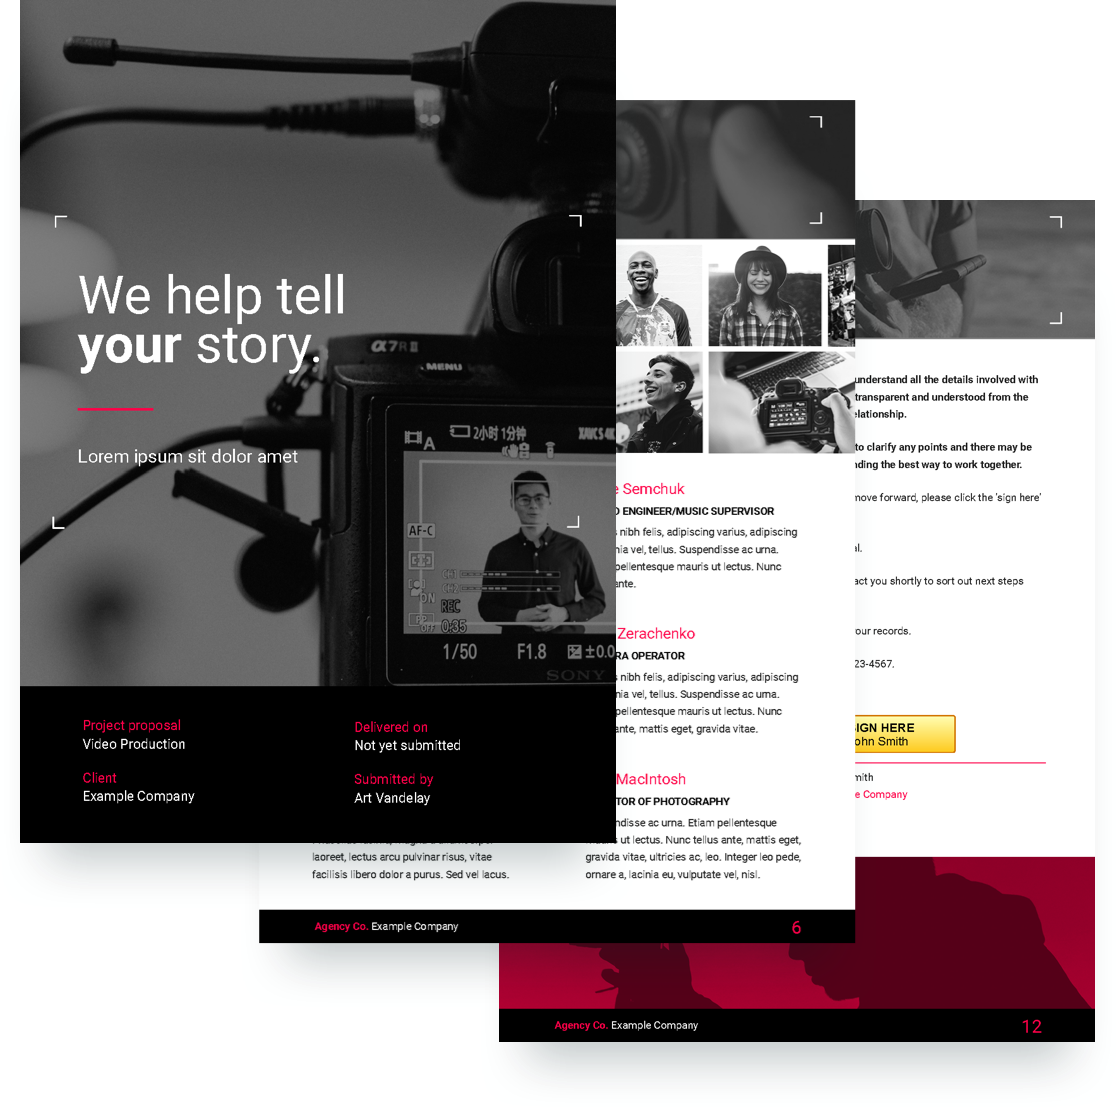 Video Proposal Template Free Sample | Proposify